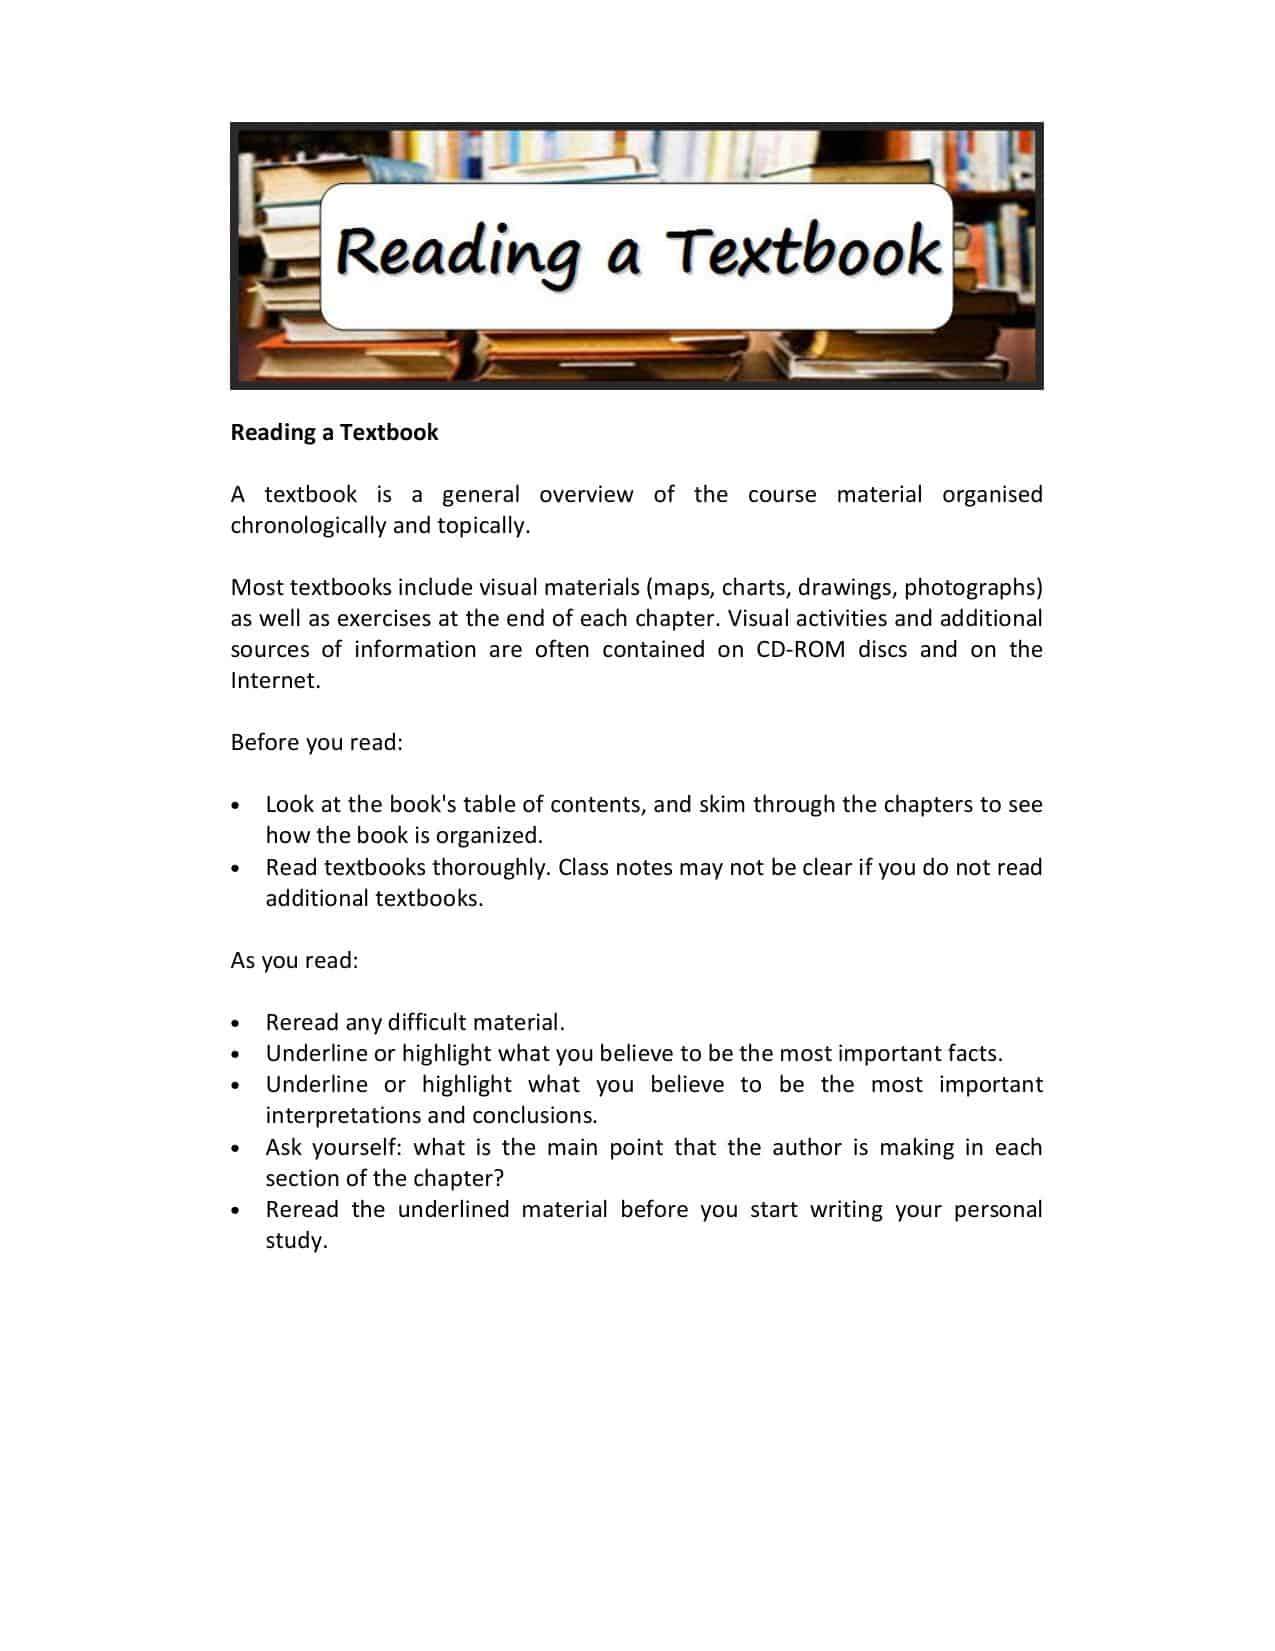 A Level Reading A History Textbook Guide Worksheet